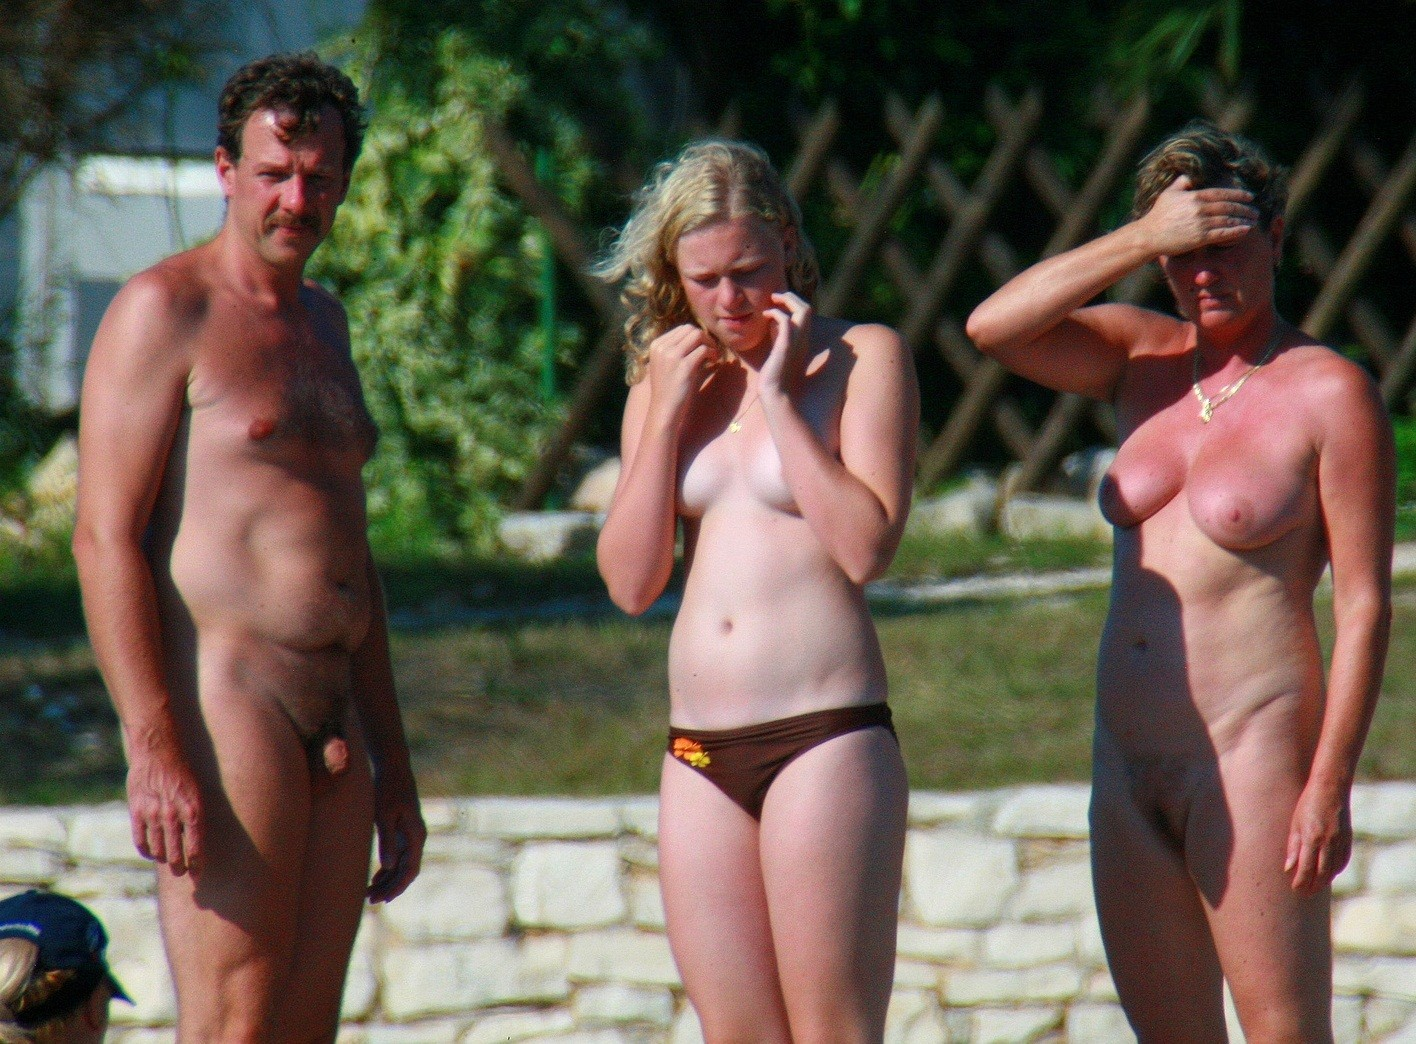 Naturist nudist mature families